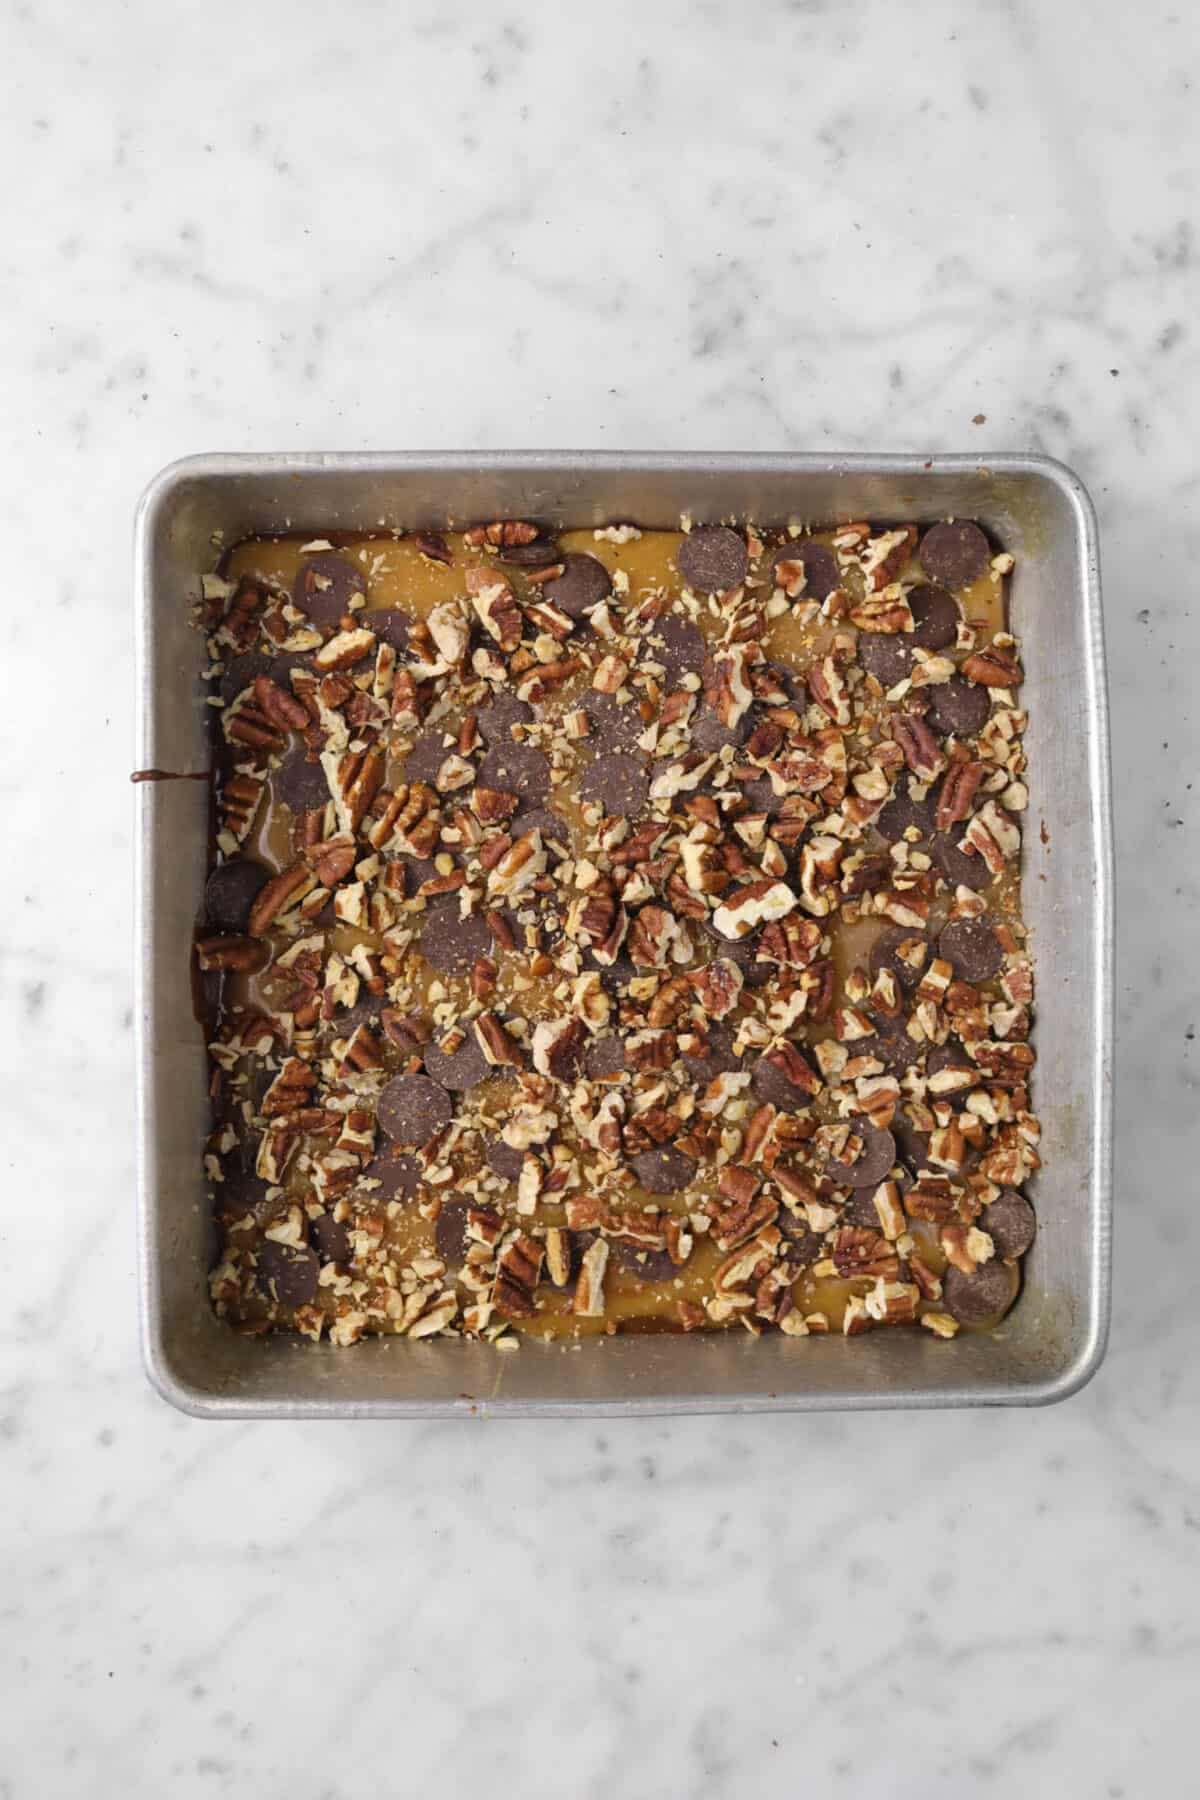 chopped toasted pecans added on top of caramel and chocolate chips